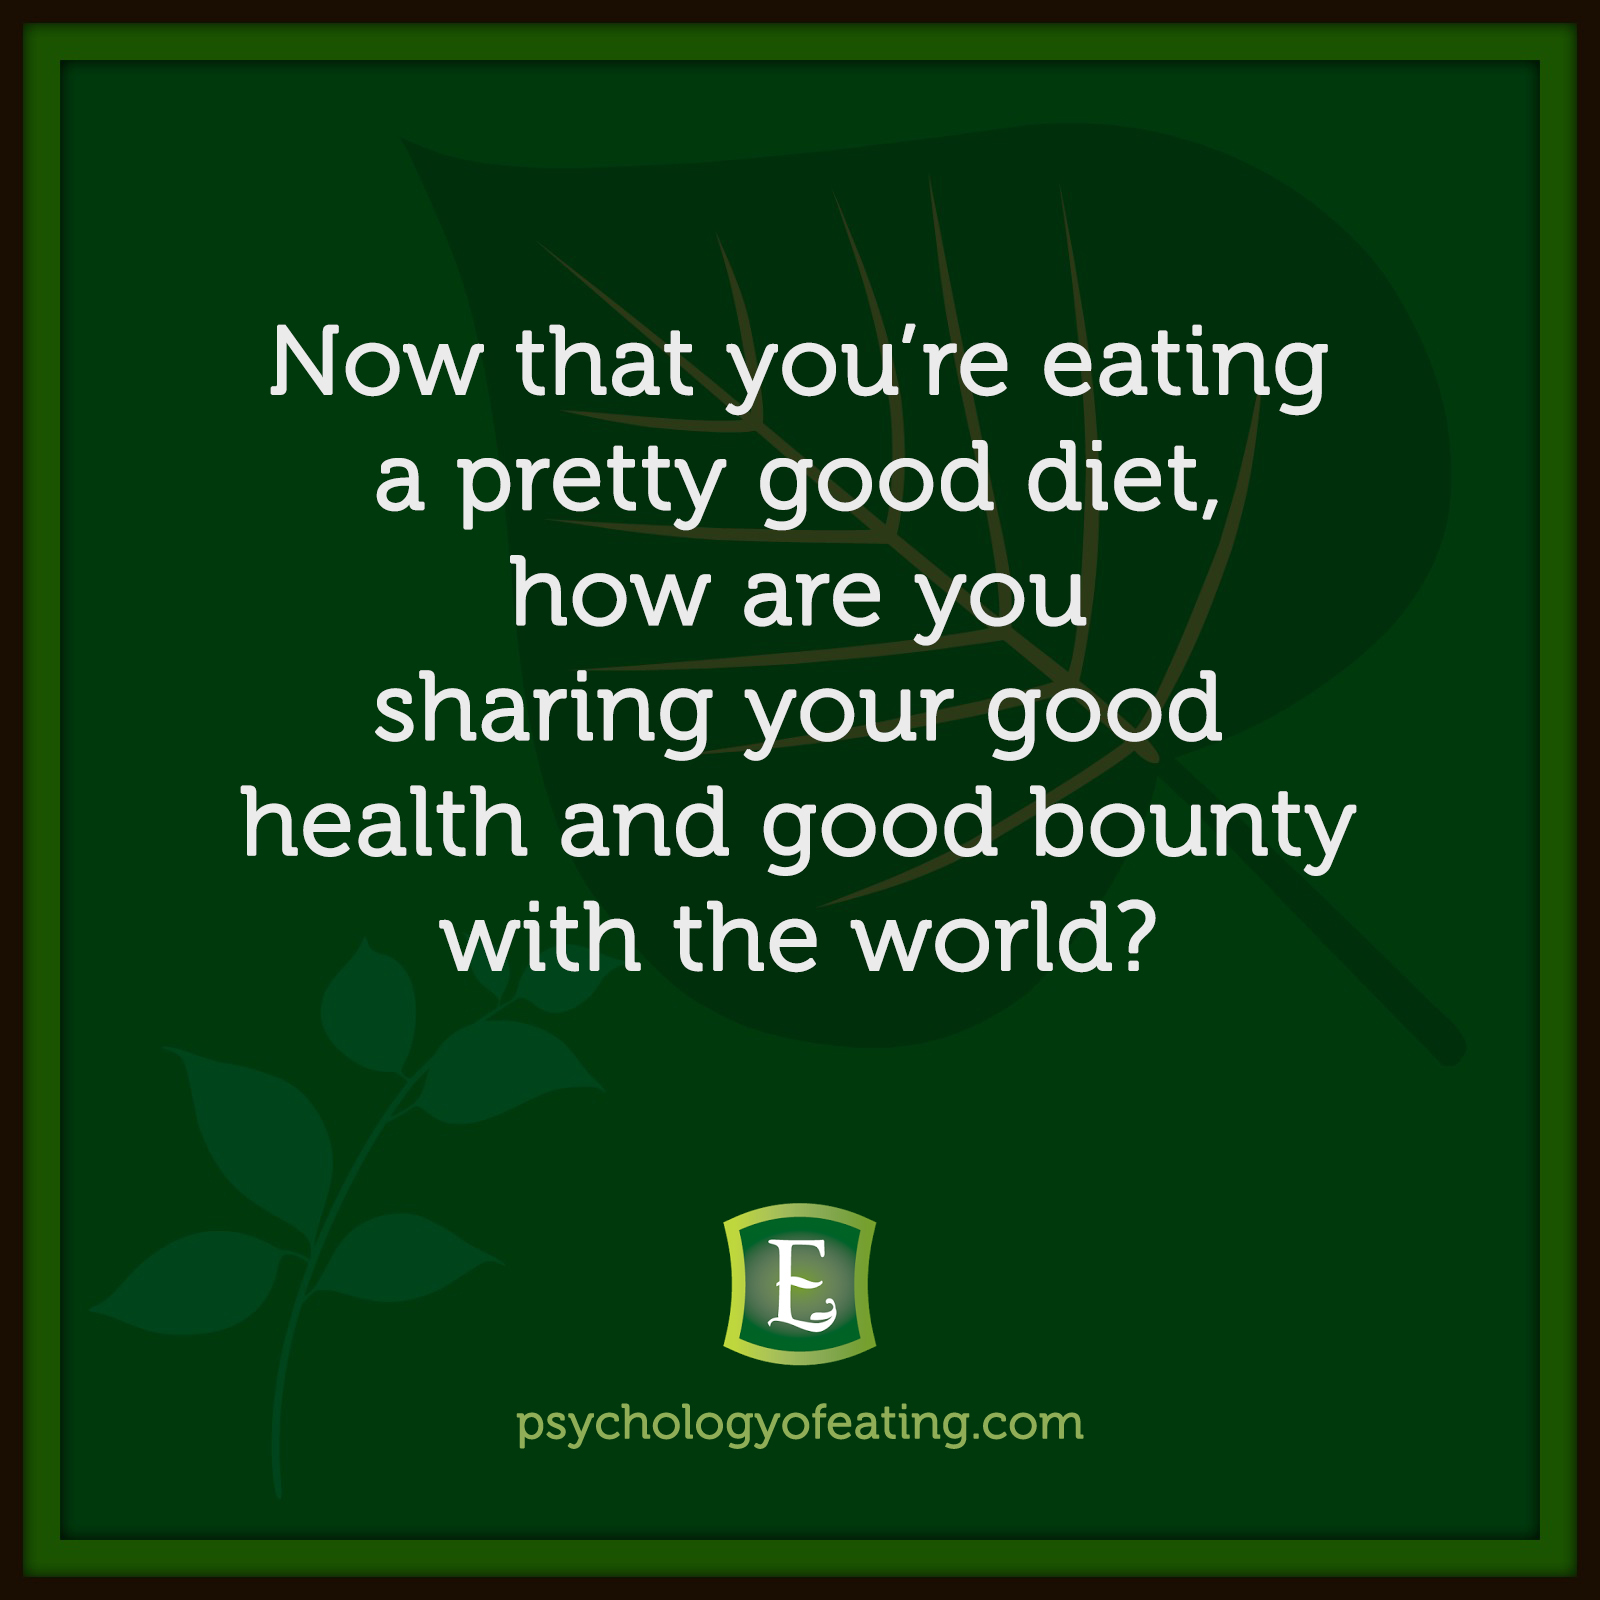 Now that you're eating a pretty good diet, how are you sharing your good health and good bounty with the world? #health #nutrition #eatingpsychology #IPE